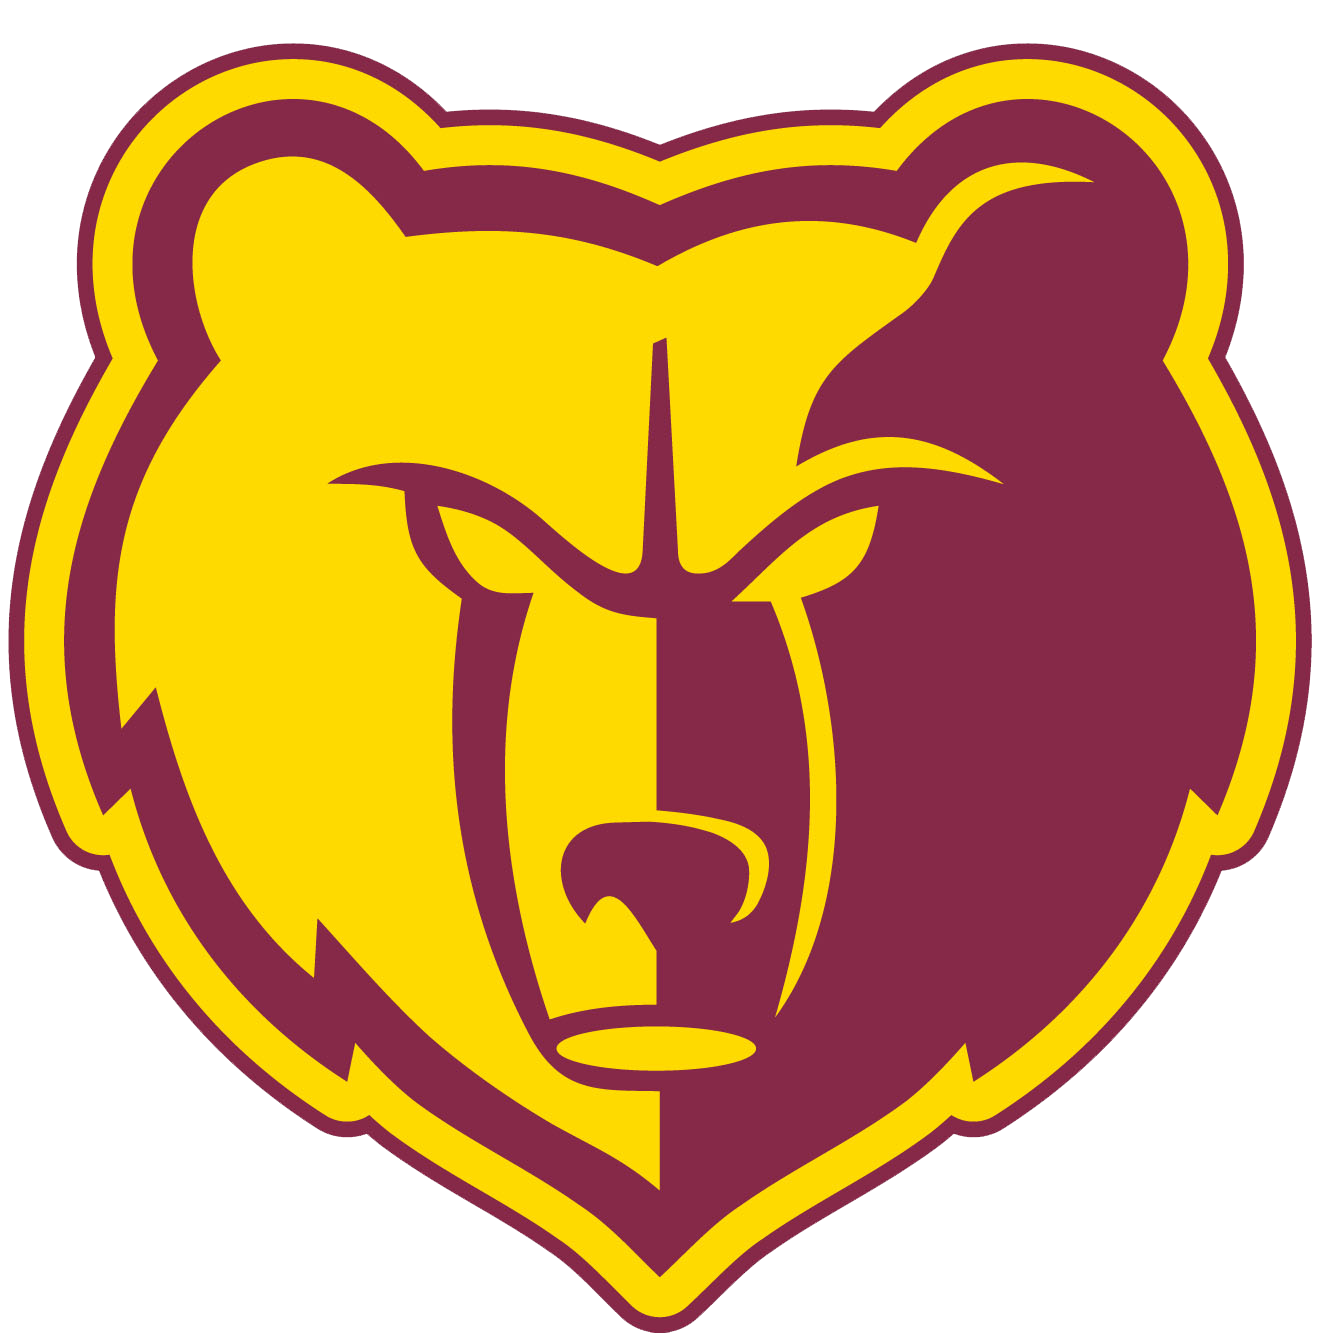 Menlo-Atherton High School logo